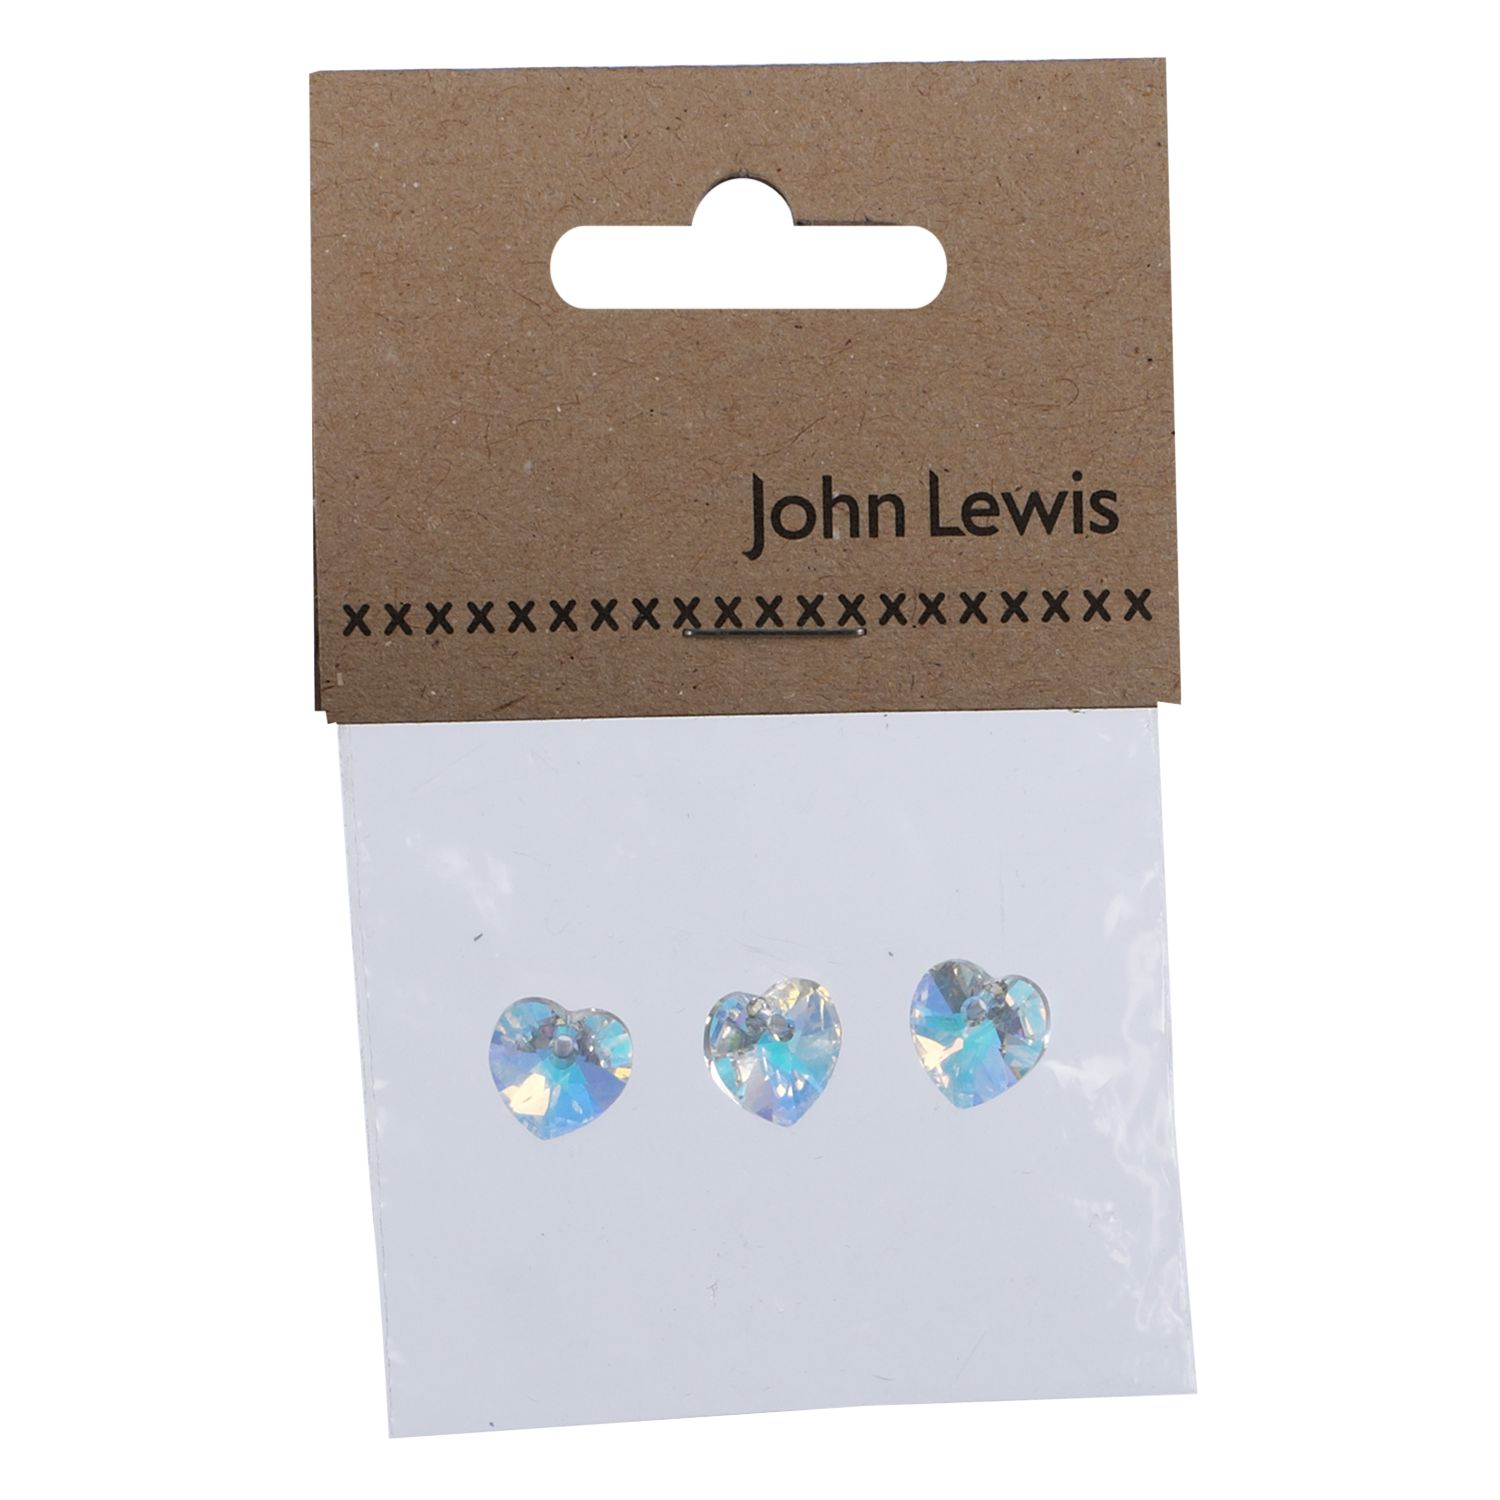 John Lewis Swarovski 10mm Heart Crystals, Pack of 3, Crystal AB